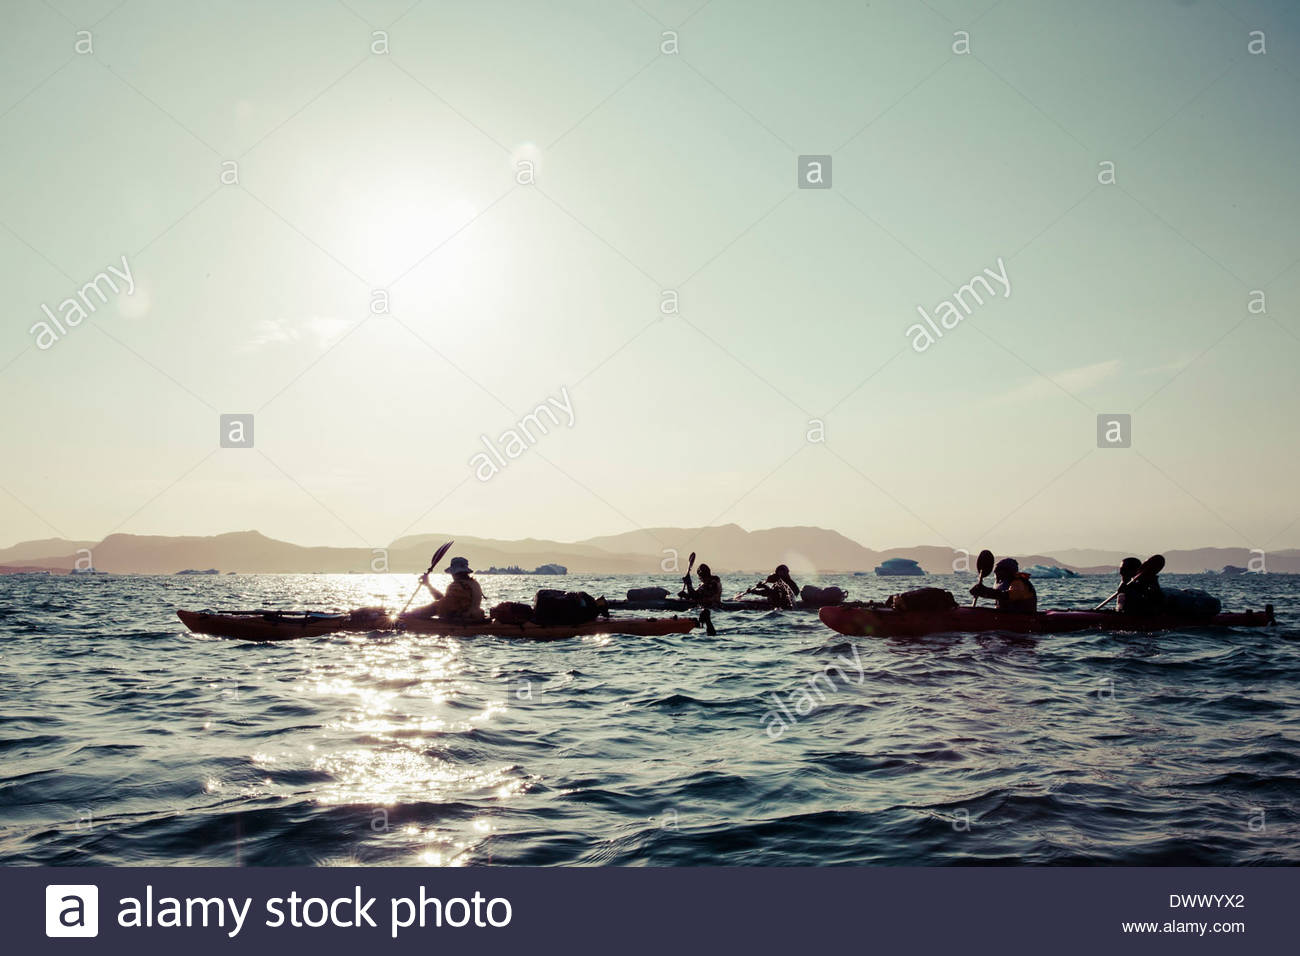 Kayakers with their kayaks on sea against sky - Stock Image